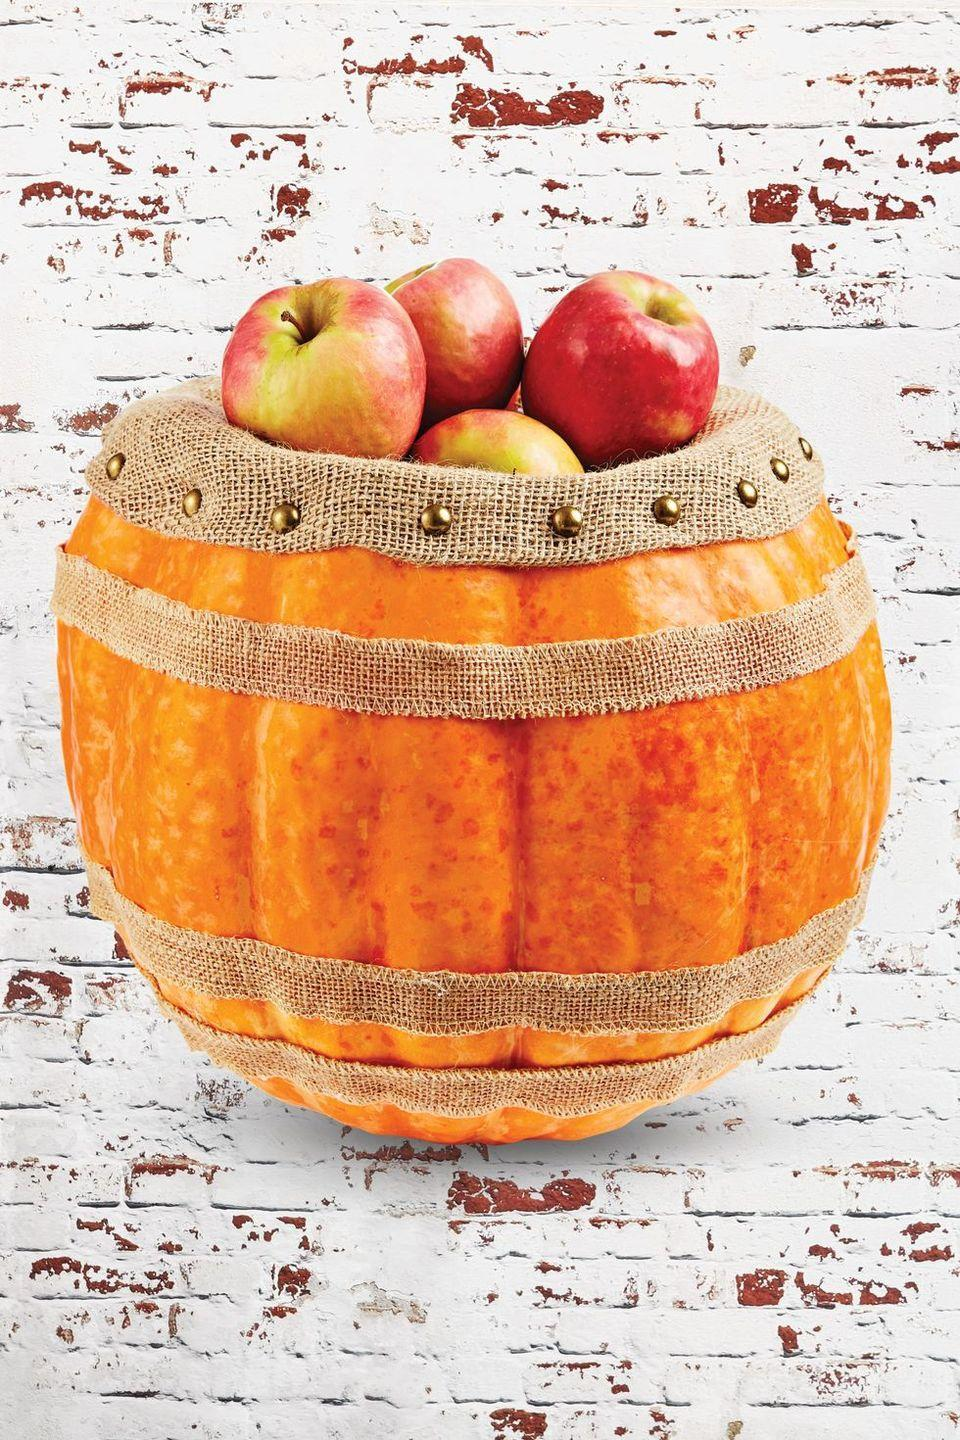 "<p>This pumpkin barrel is perfect for showing off your apple picking haul or filling with candy so that trick-or-treaters can help themselves.</p><p><strong>Make the Pumpkin Barrel:</strong> Cut off the top quarter of an extra-large pumpkin; scoop out pulp and seeds. Hot-glue three strips of ribbon around outside of pumpkin. Stuff pumpkin three-fourths full with Poly-Fil. Insert burlap fabric into the opening and fold over outside of pumpkin; hold in place with upholstery tacks. Fill with apples or desired items.</p><p><a class=""link rapid-noclick-resp"" href=""https://www.amazon.com/Afula-Burlap-BUR40-5YDS-Natural-Yards/dp/B07B9KLKXG/ref=sr_1_1_sspa?tag=syn-yahoo-20&ascsubtag=%5Bartid%7C10050.g.279%5Bsrc%7Cyahoo-us"" rel=""nofollow noopener"" target=""_blank"" data-ylk=""slk:Shop Burlap"">Shop Burlap</a><br></p>"